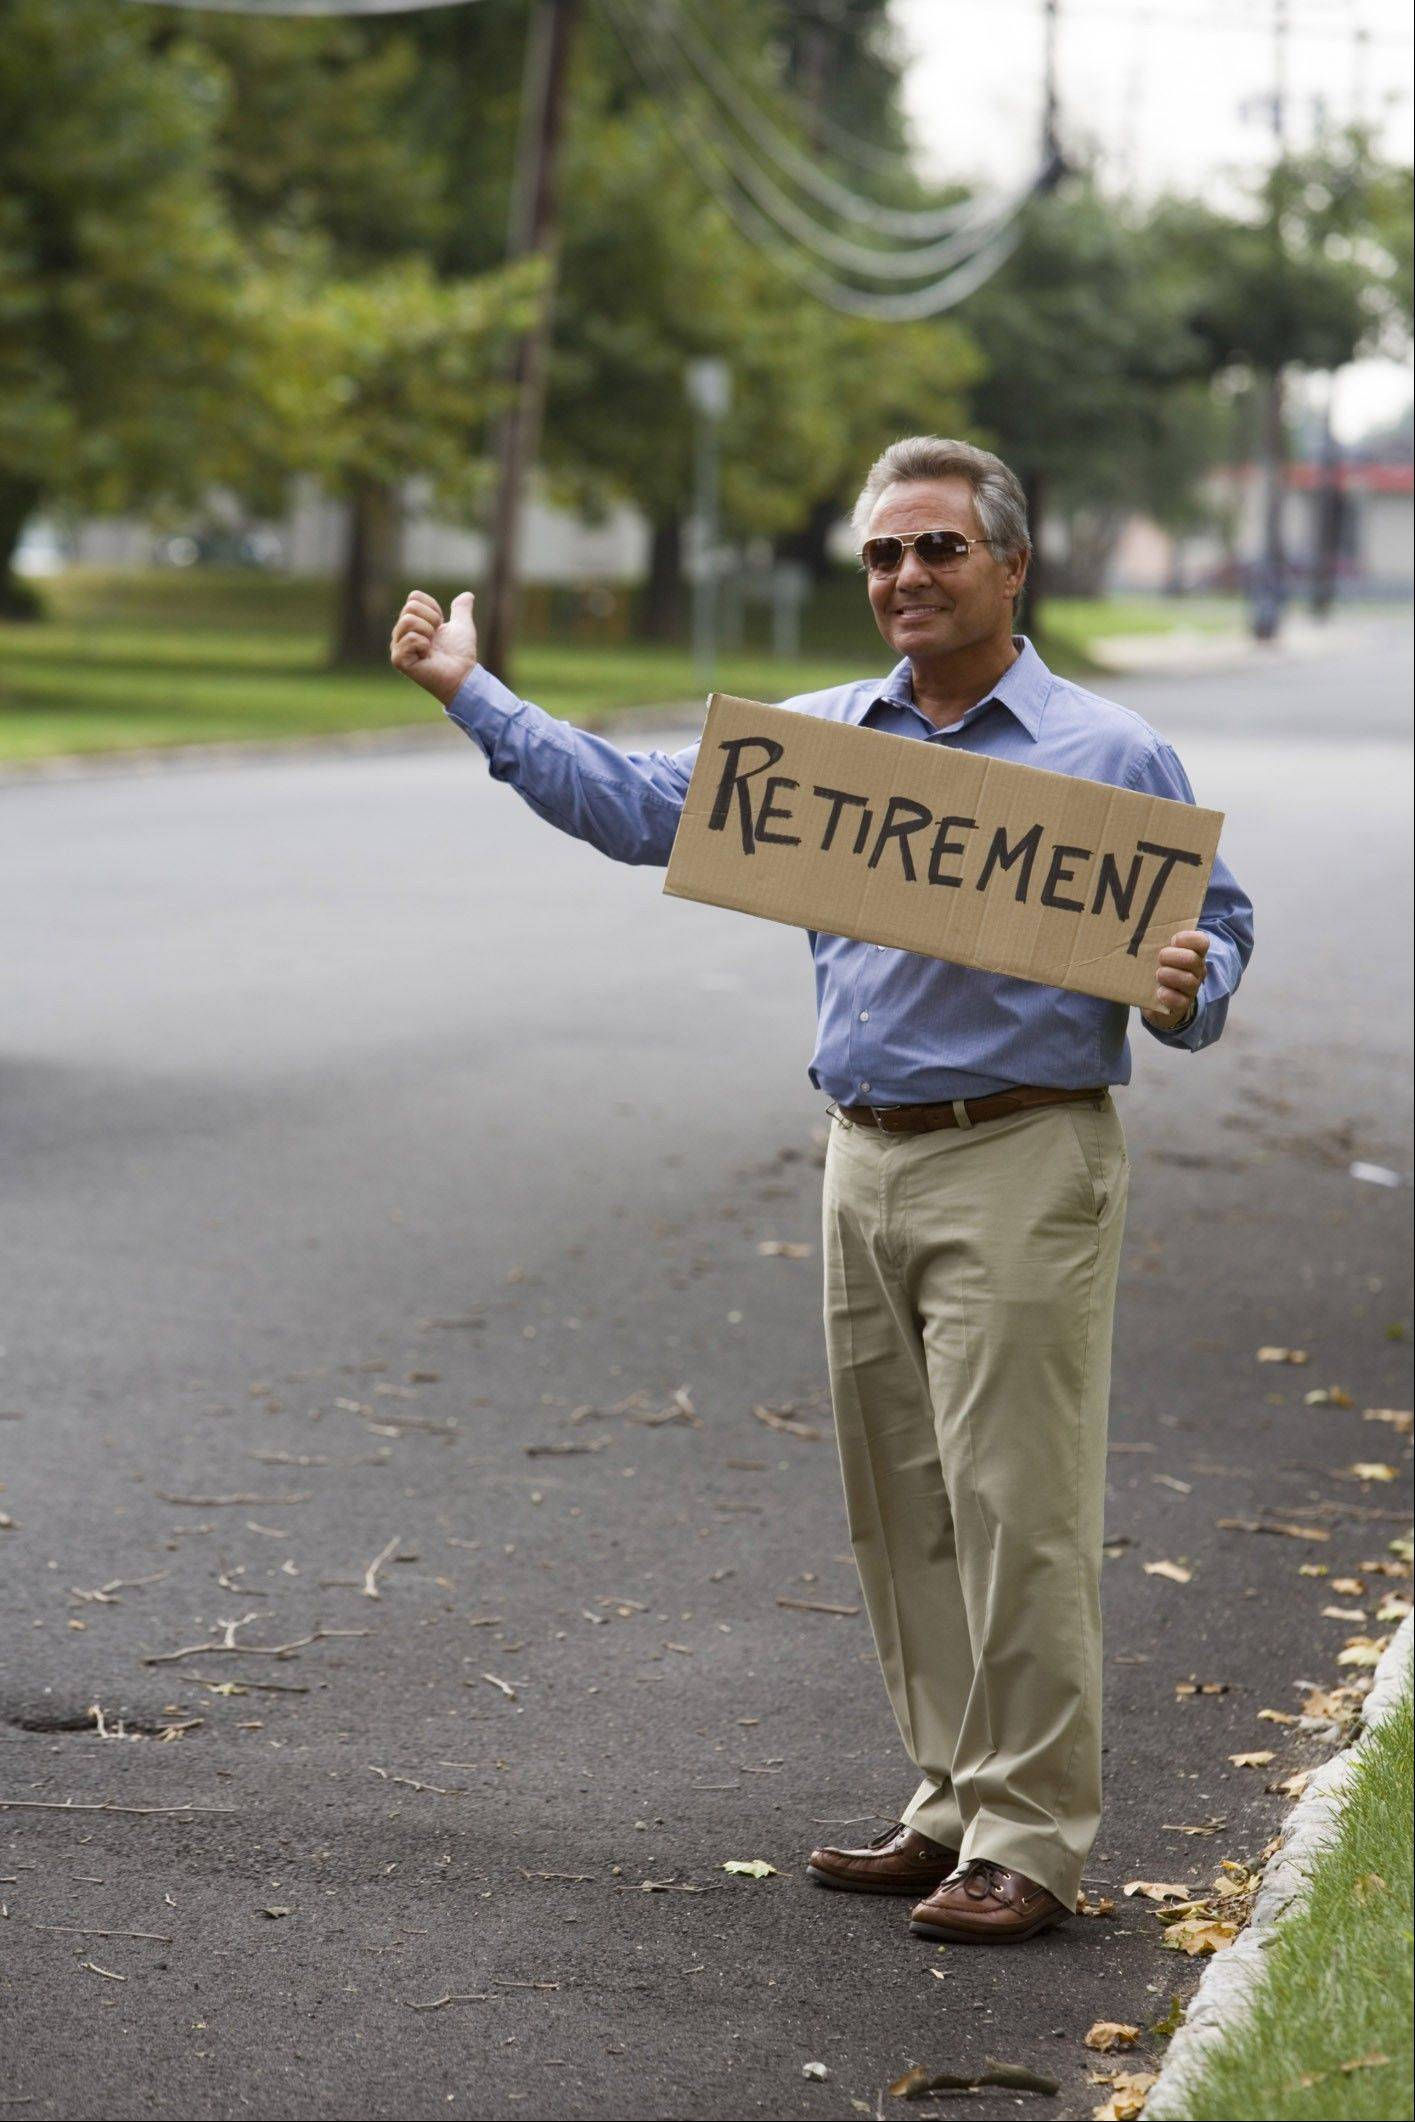 At least one aging expert says many baby boomers are not prepared for old age.